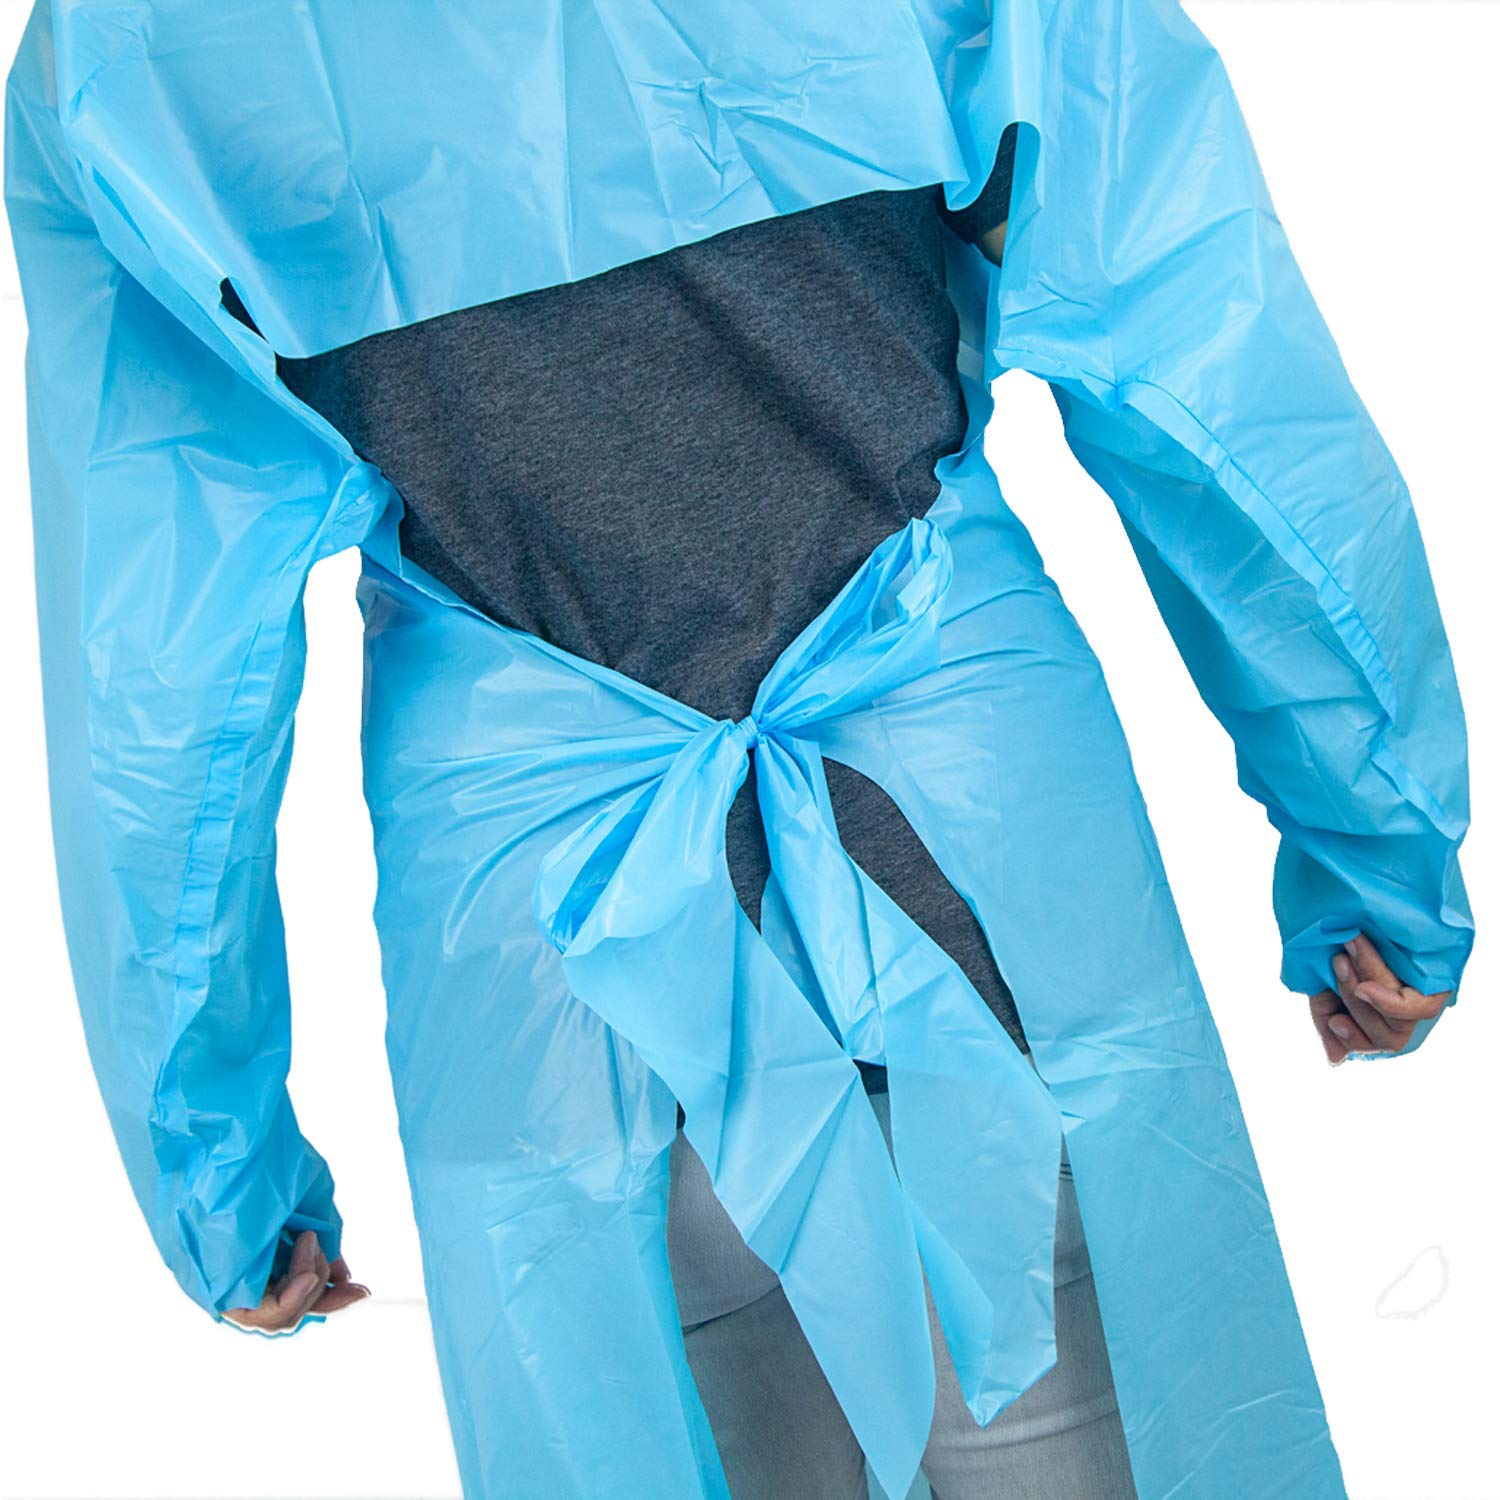 SAFE HANDLER Disposable Sleeve Gown | Open Back with Thumb Loops, 0.5 MIL, Blue, 100 Count by Safe Handler (Image #5)